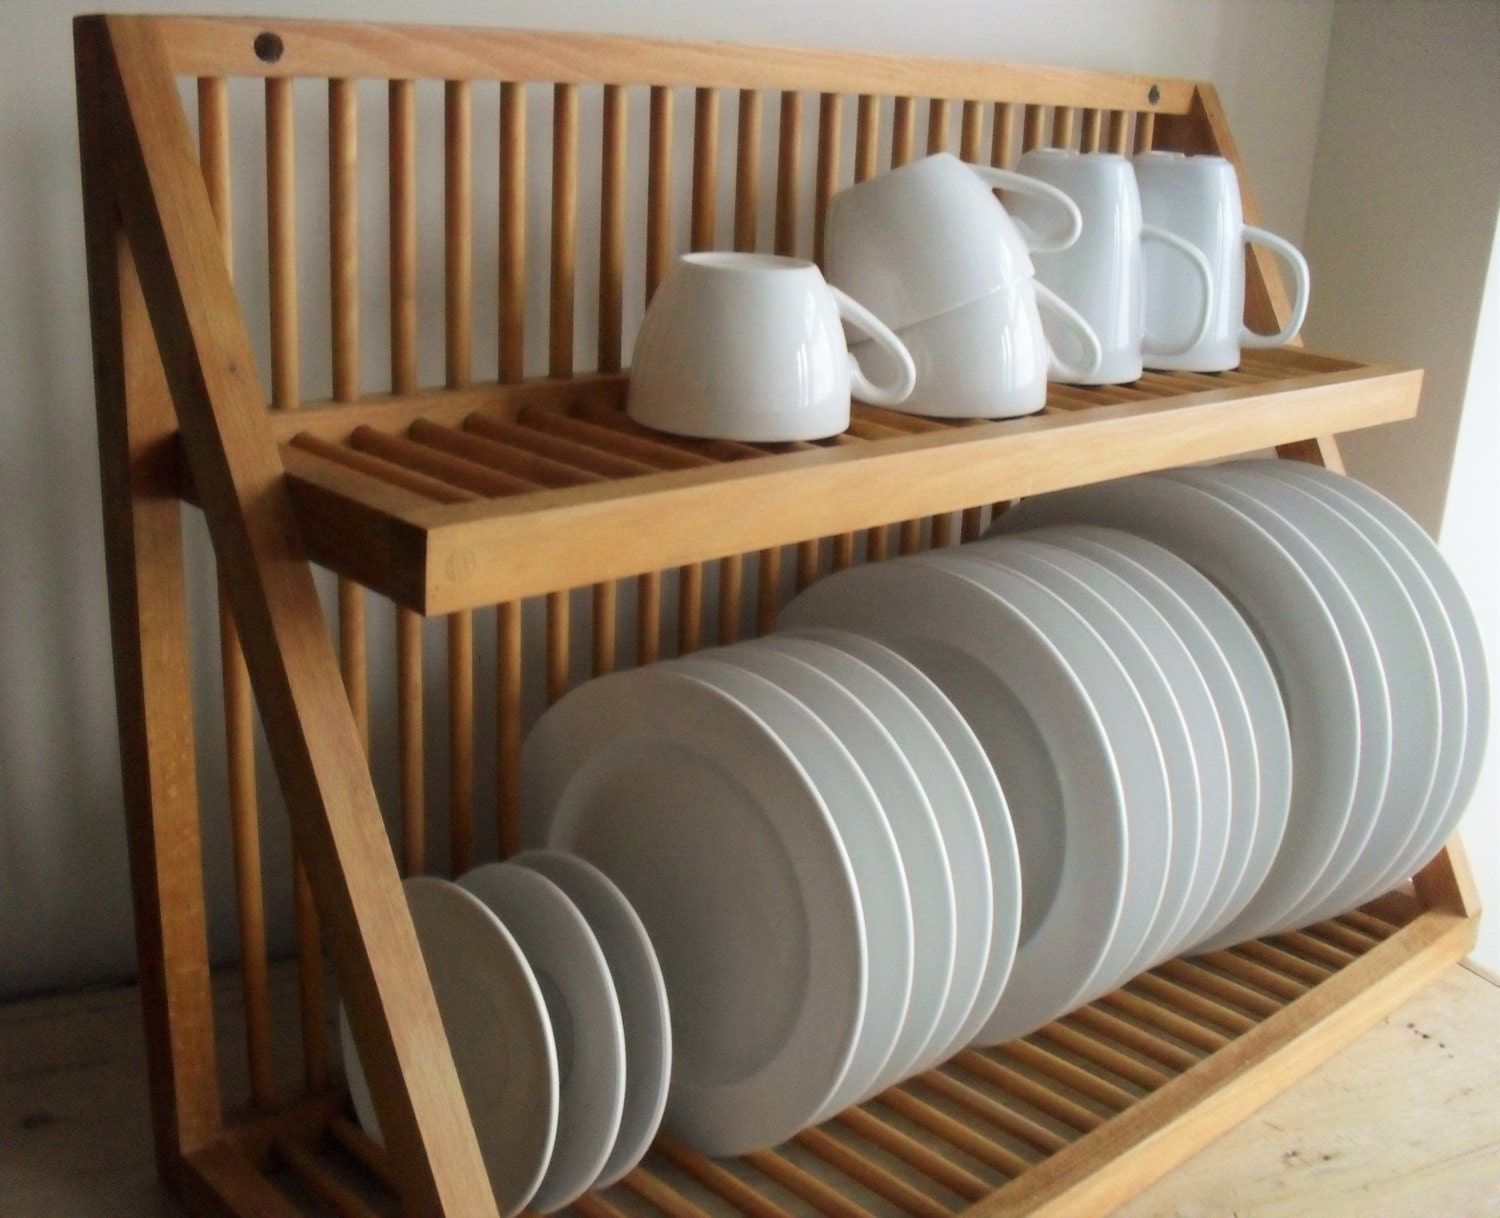 Wooden Plate Racks For Kitchens Reserved For Aoak Plate Rack Vintage Wooden Plate Storage